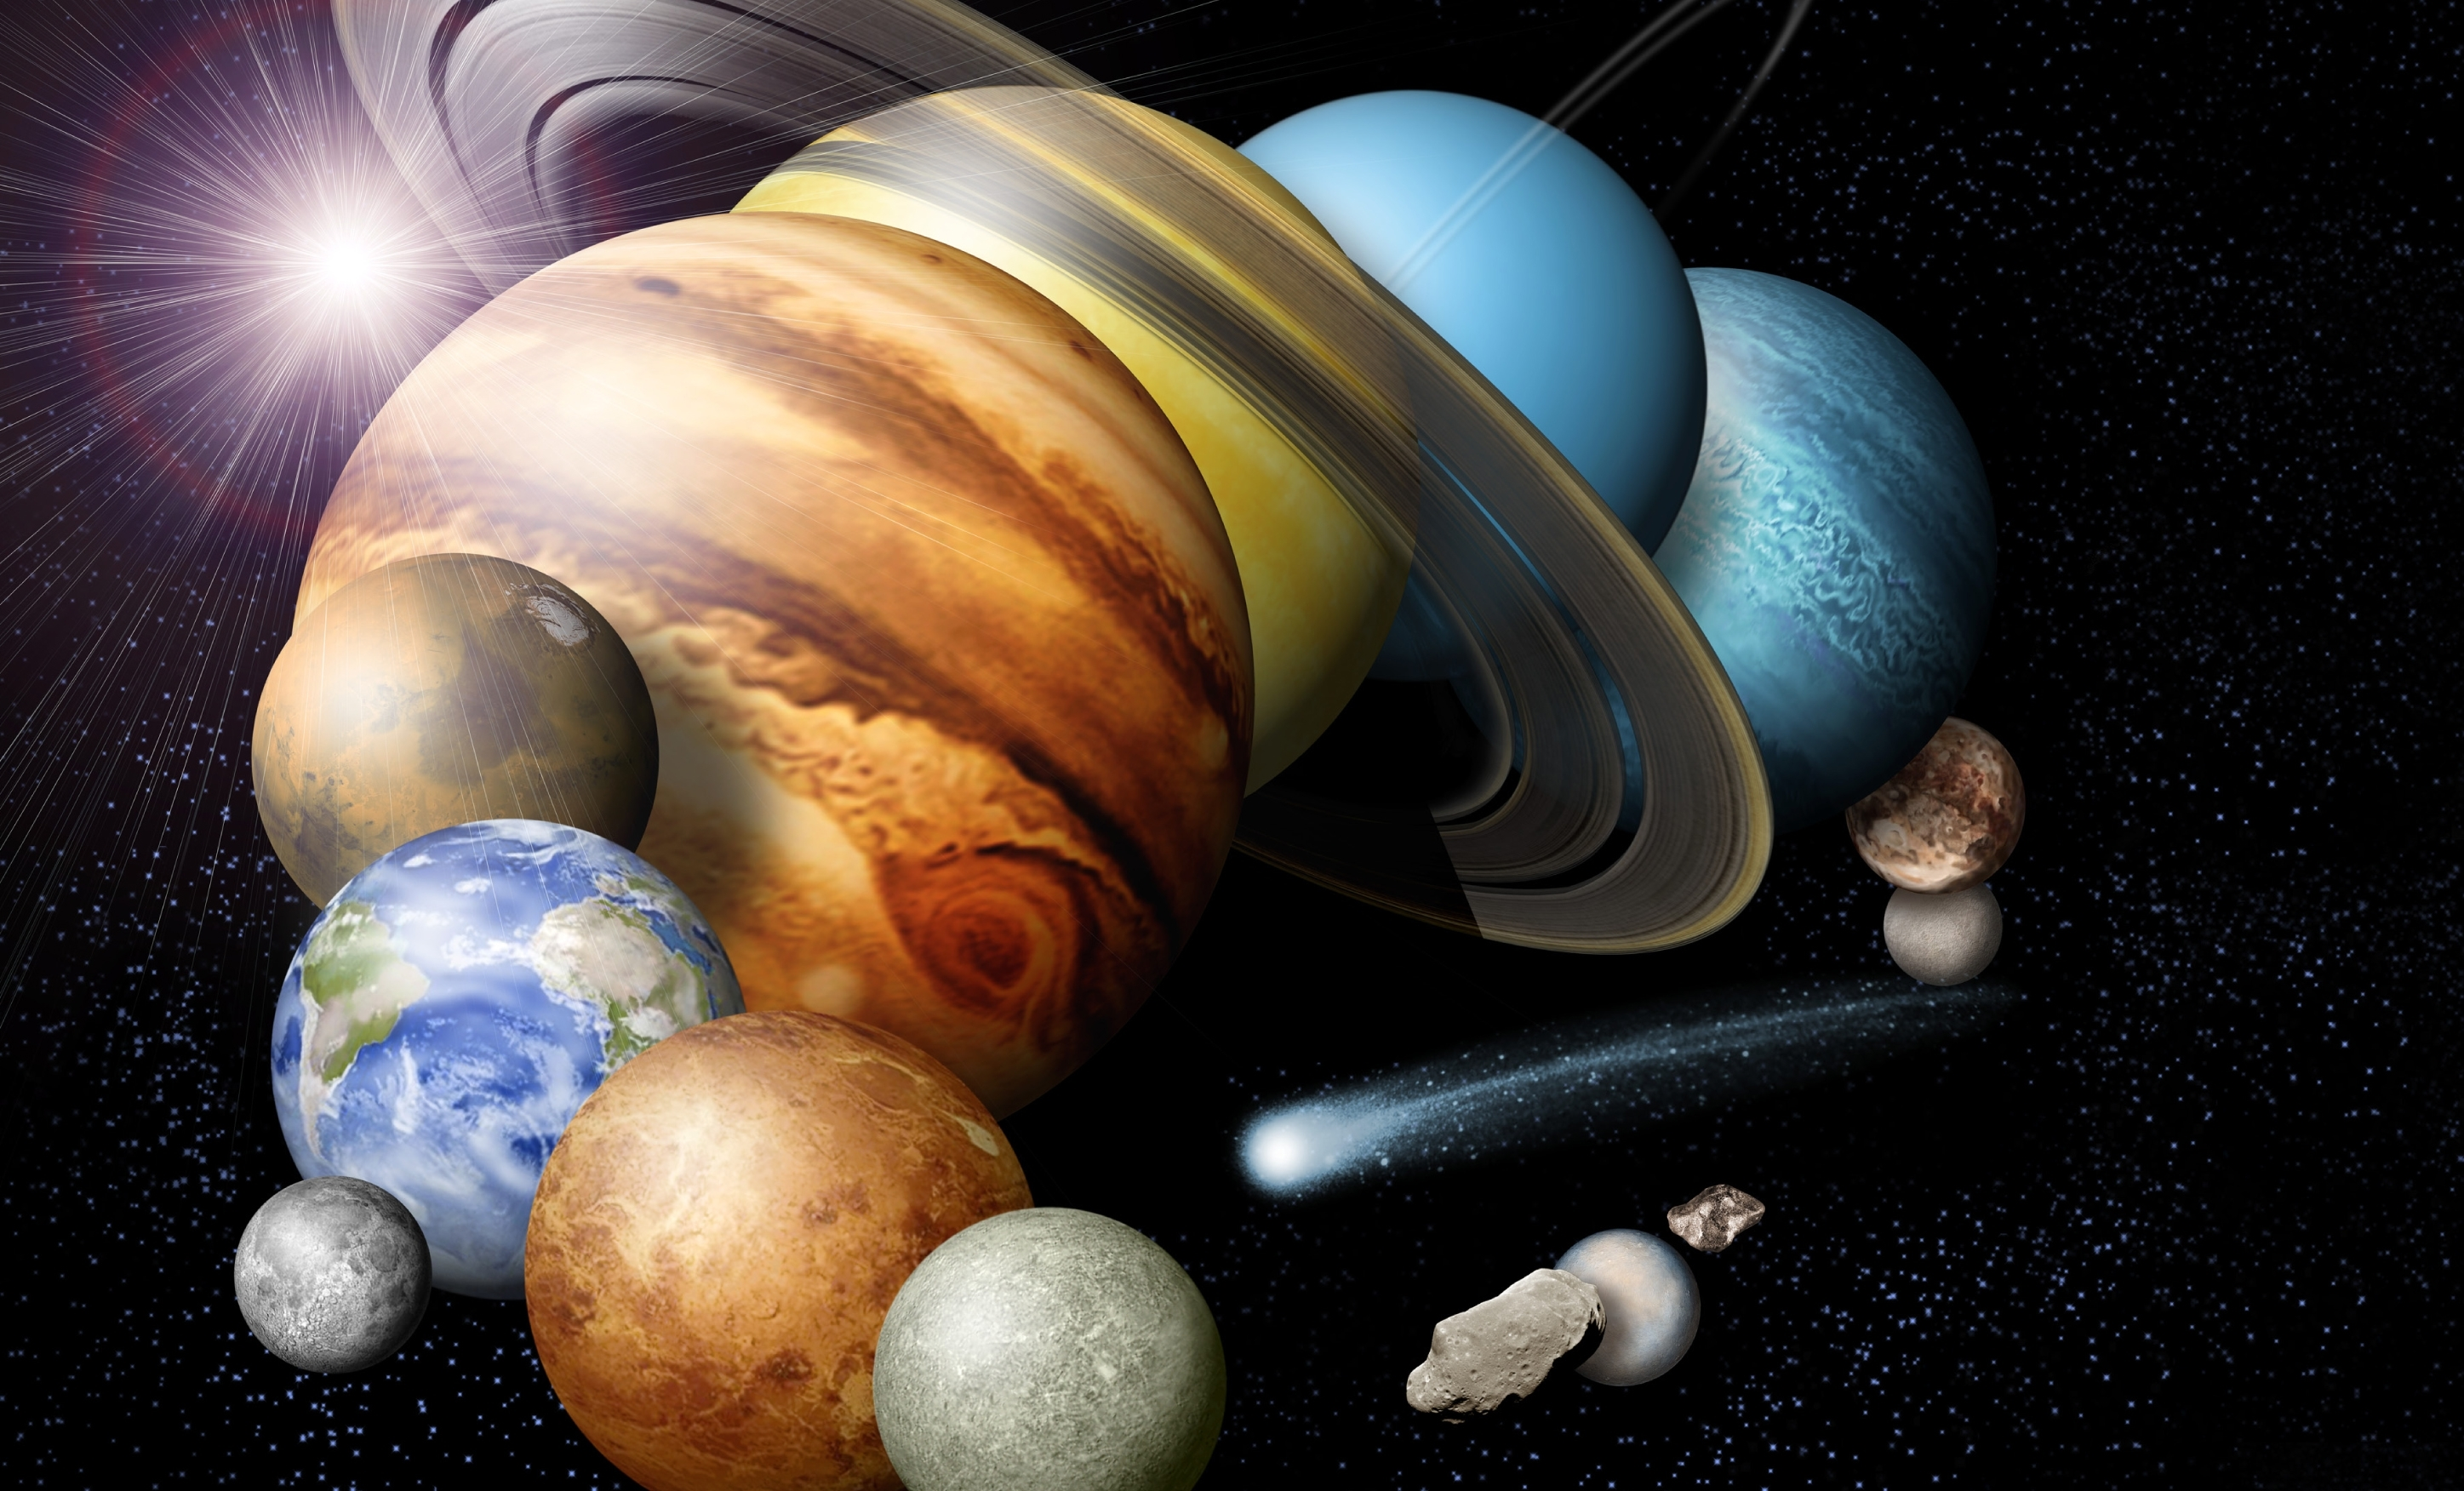 planets and solar system - HD2895×1752